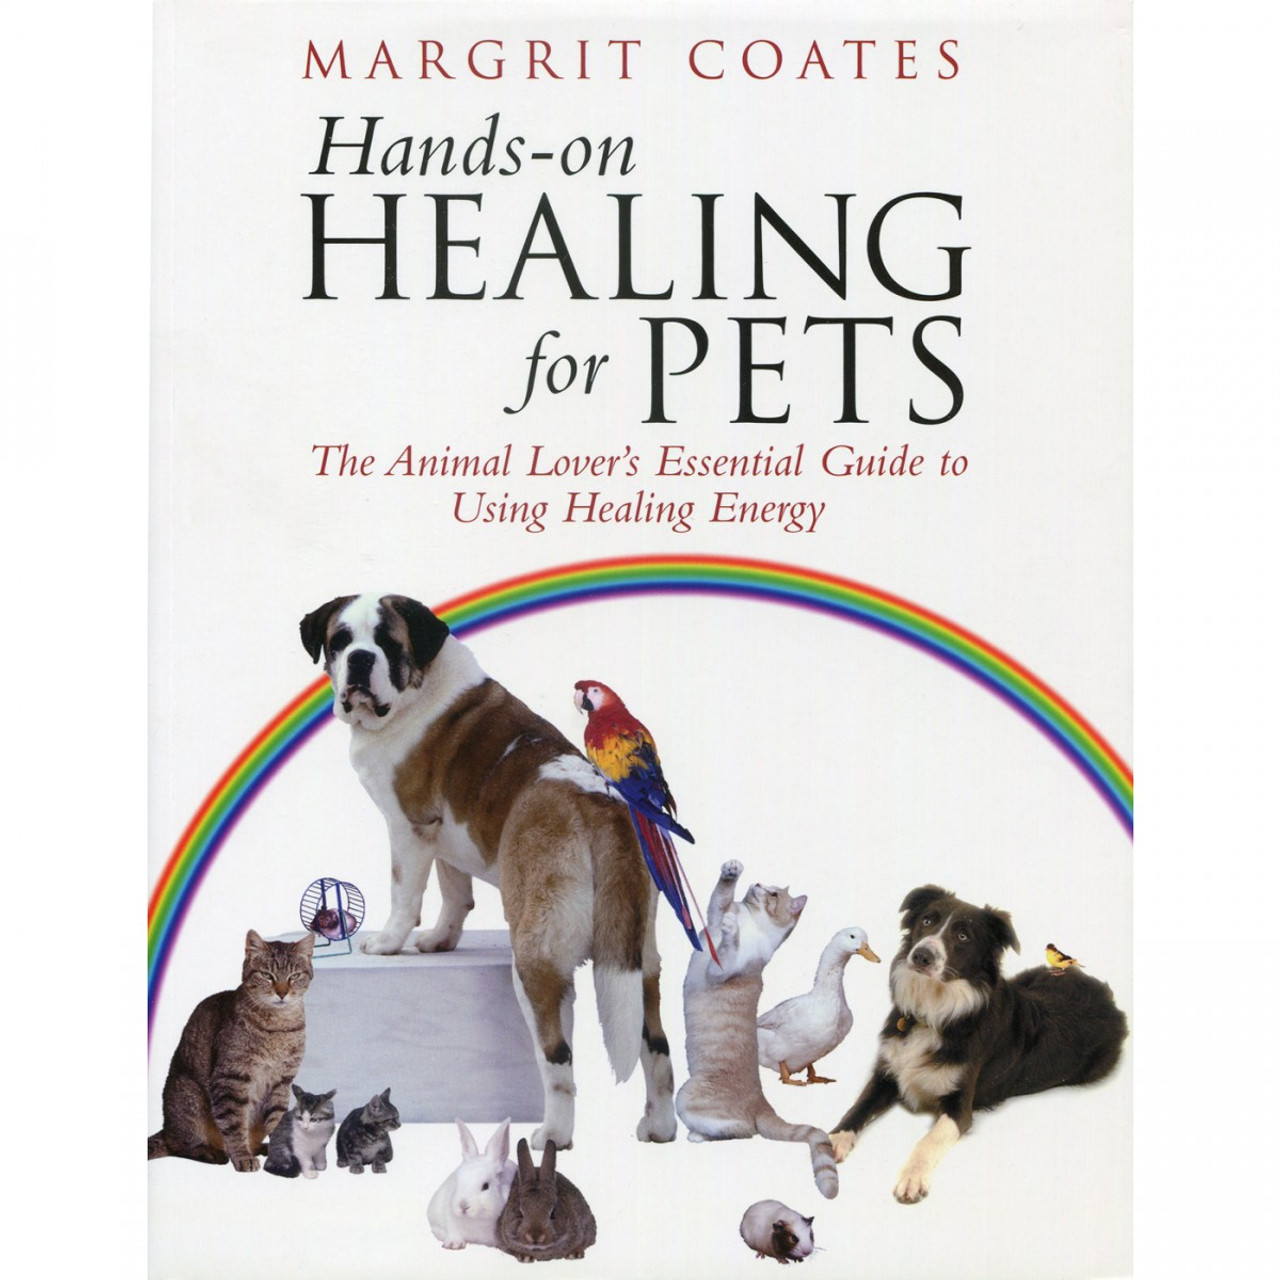 Hands-On Healing for Pets by Margrit Coates